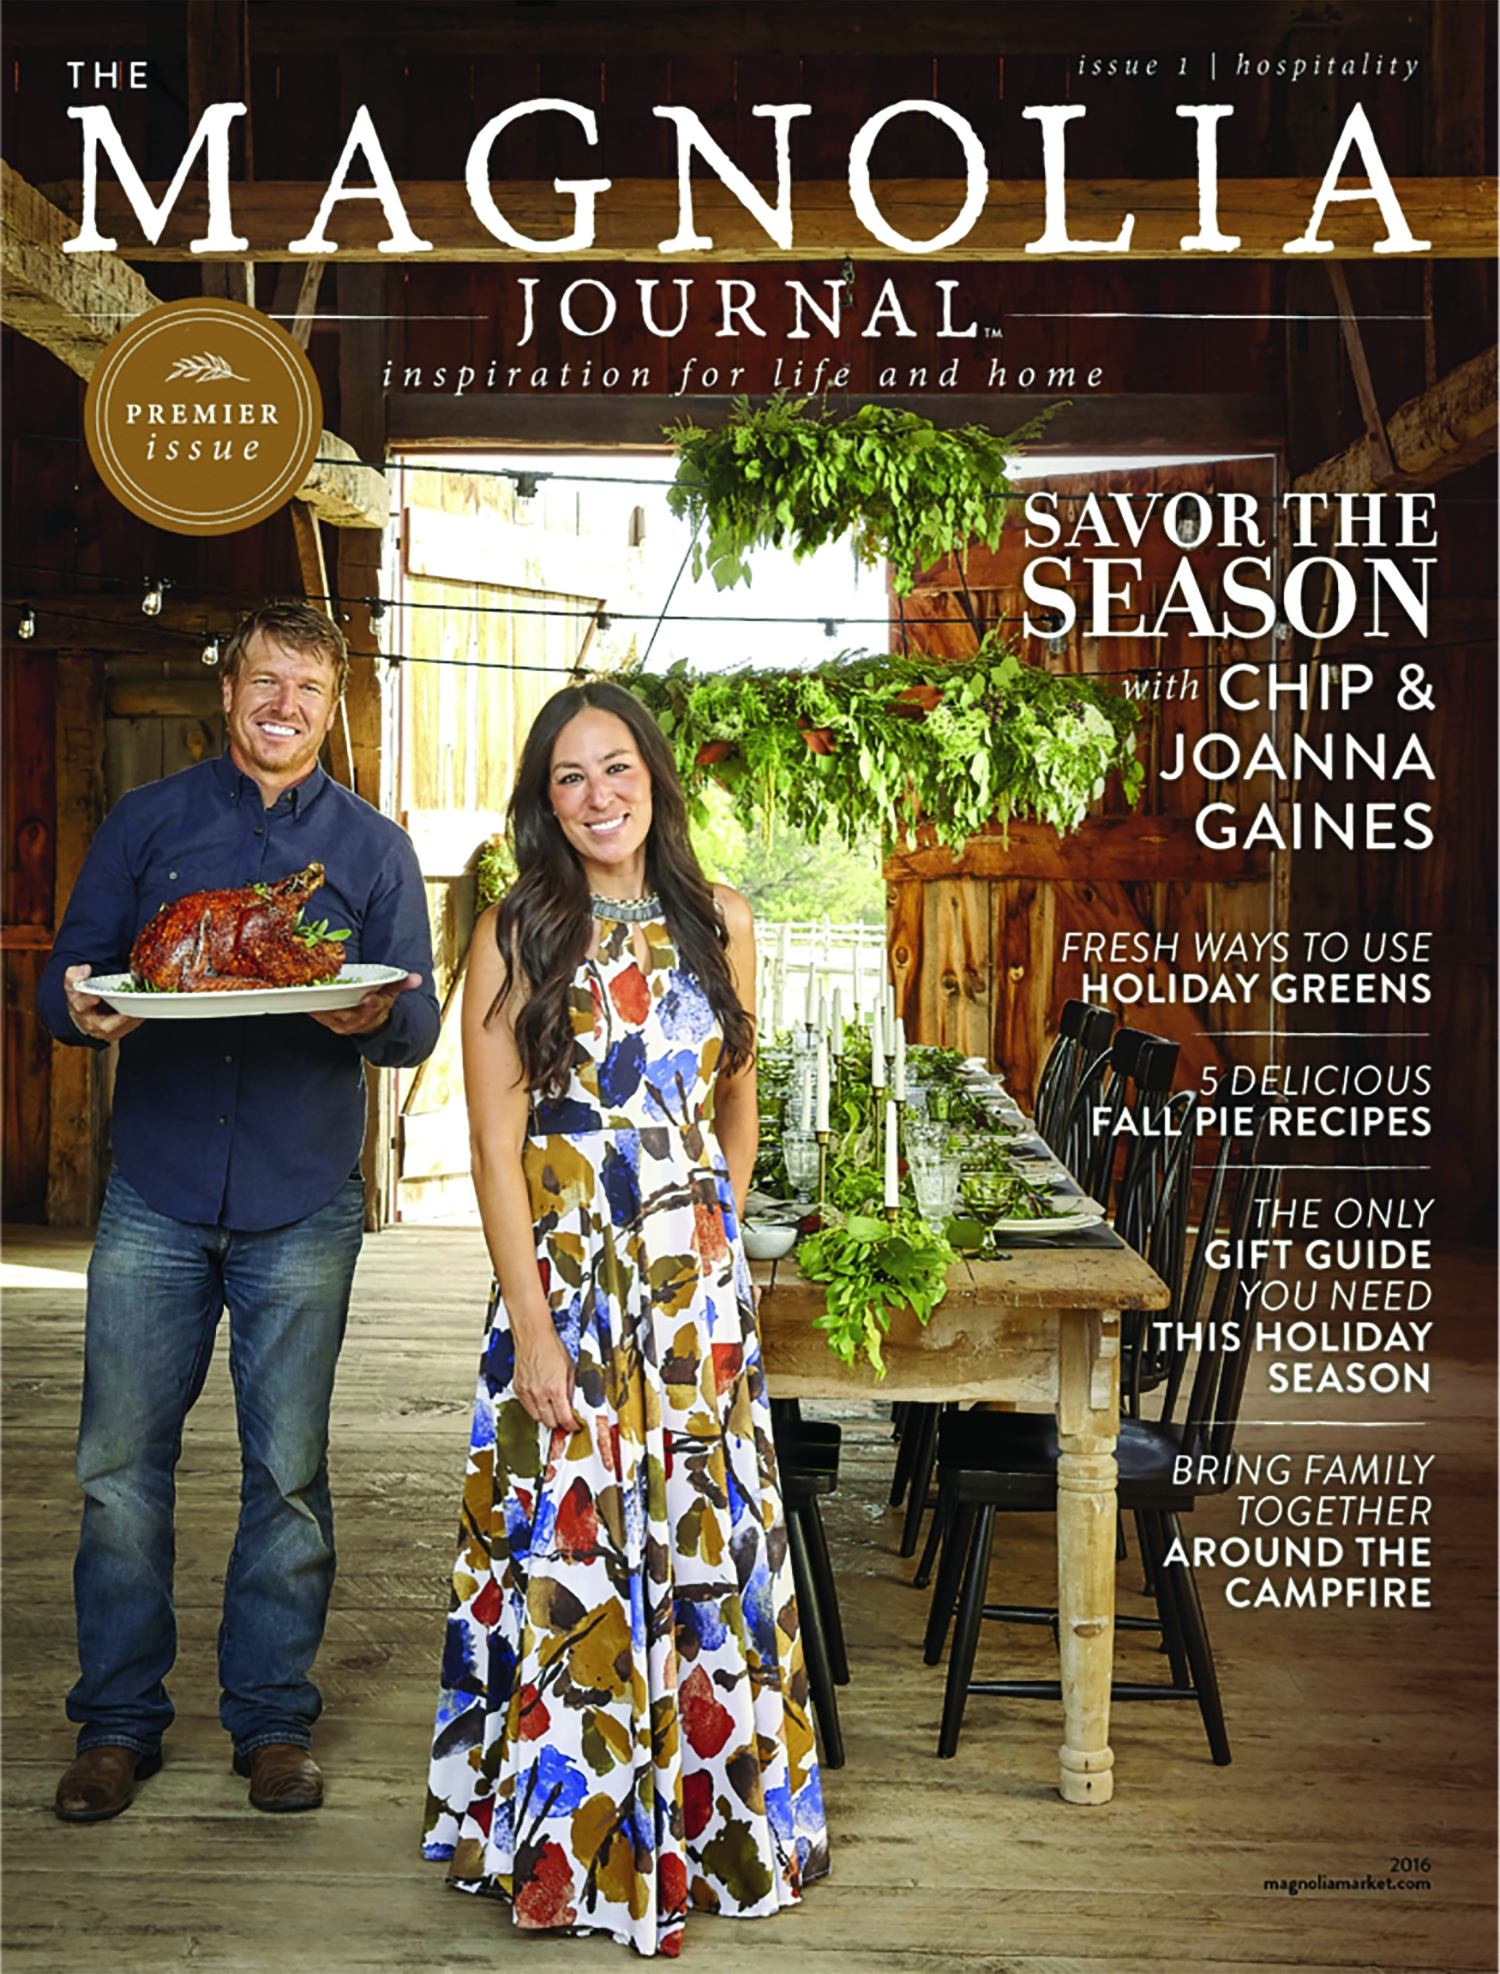 the-magnolia-journal-cover-image_1024x1024